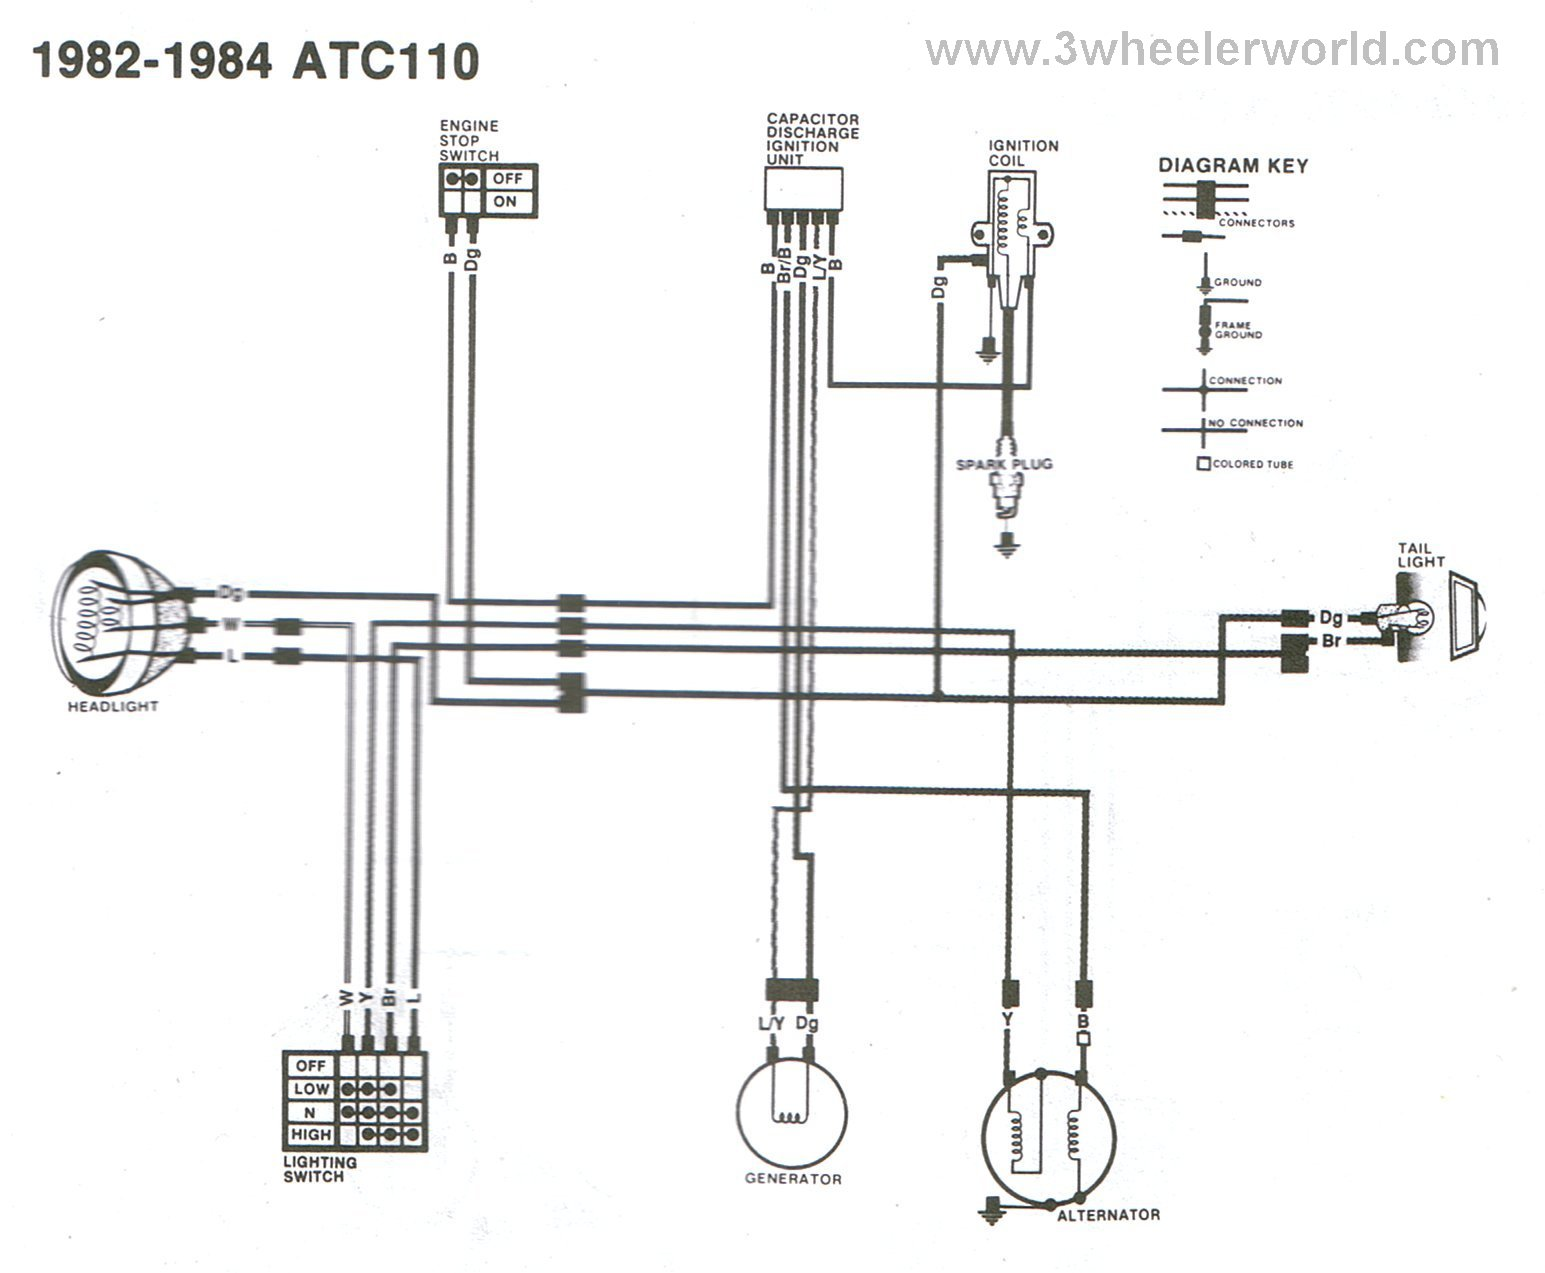 Honda Atc 185 Wiring Diagram Diagrams Cb750 Schematic 200x Box Motorcycle Schematics 3 Wheeler World Tech